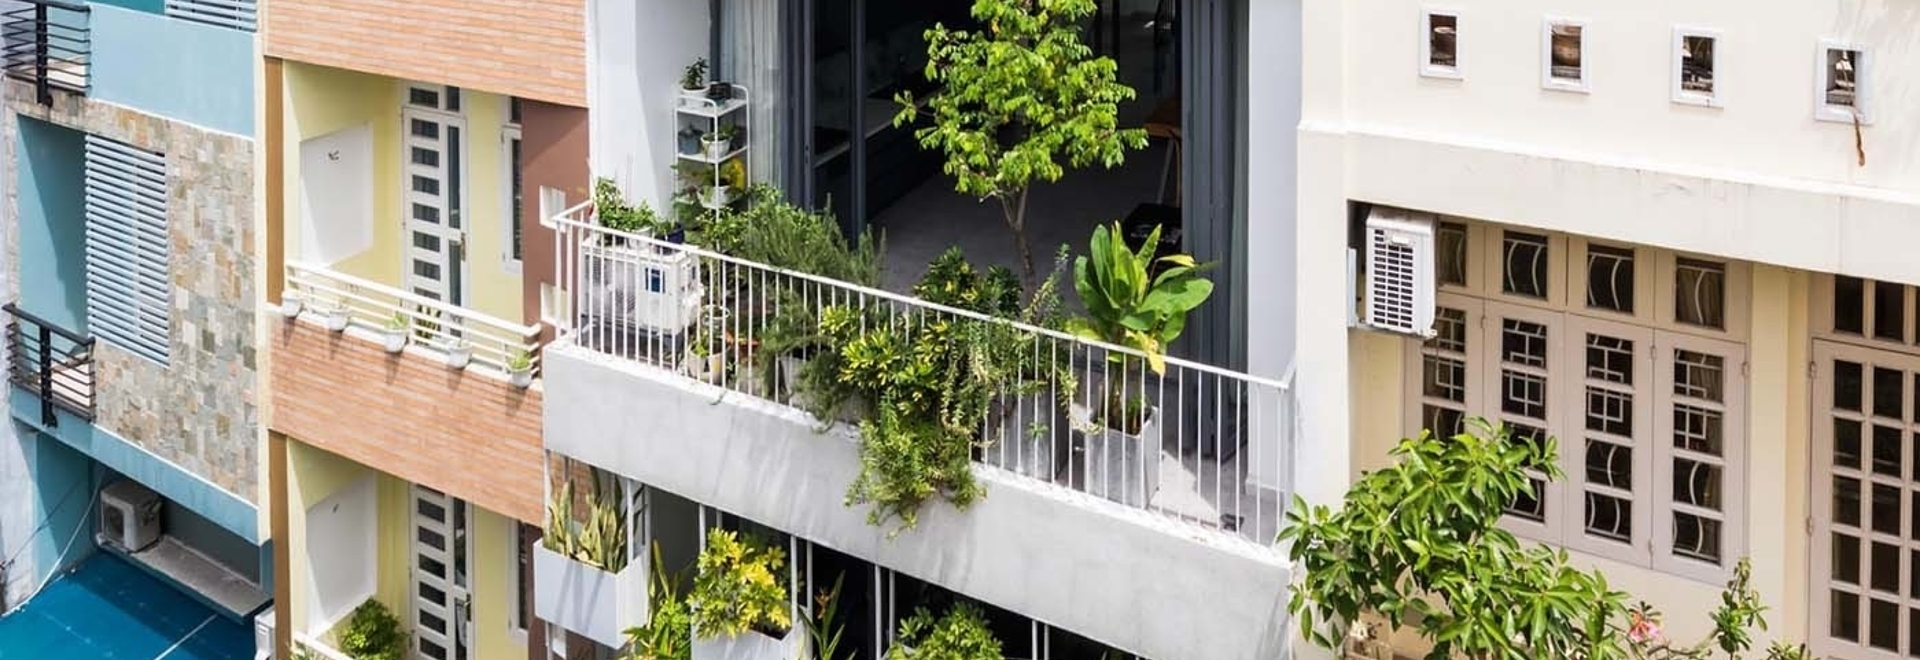 Built-In Planters Add Privacy And Greenery To This Home's Exterior